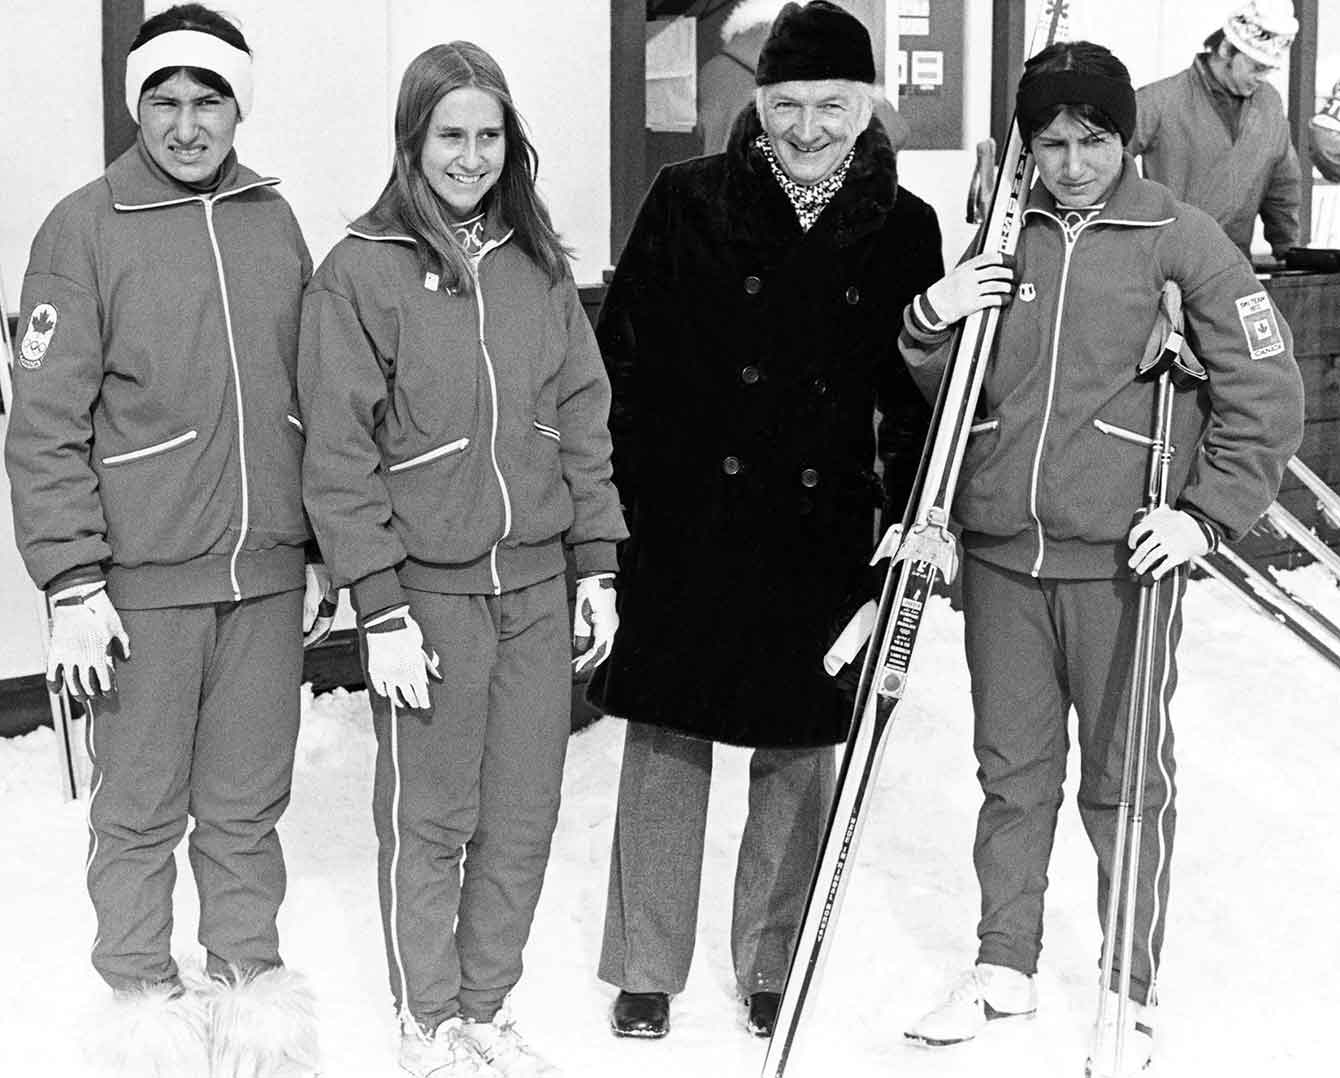 Group photo in black in white. Sharon Firth is holding her skii's